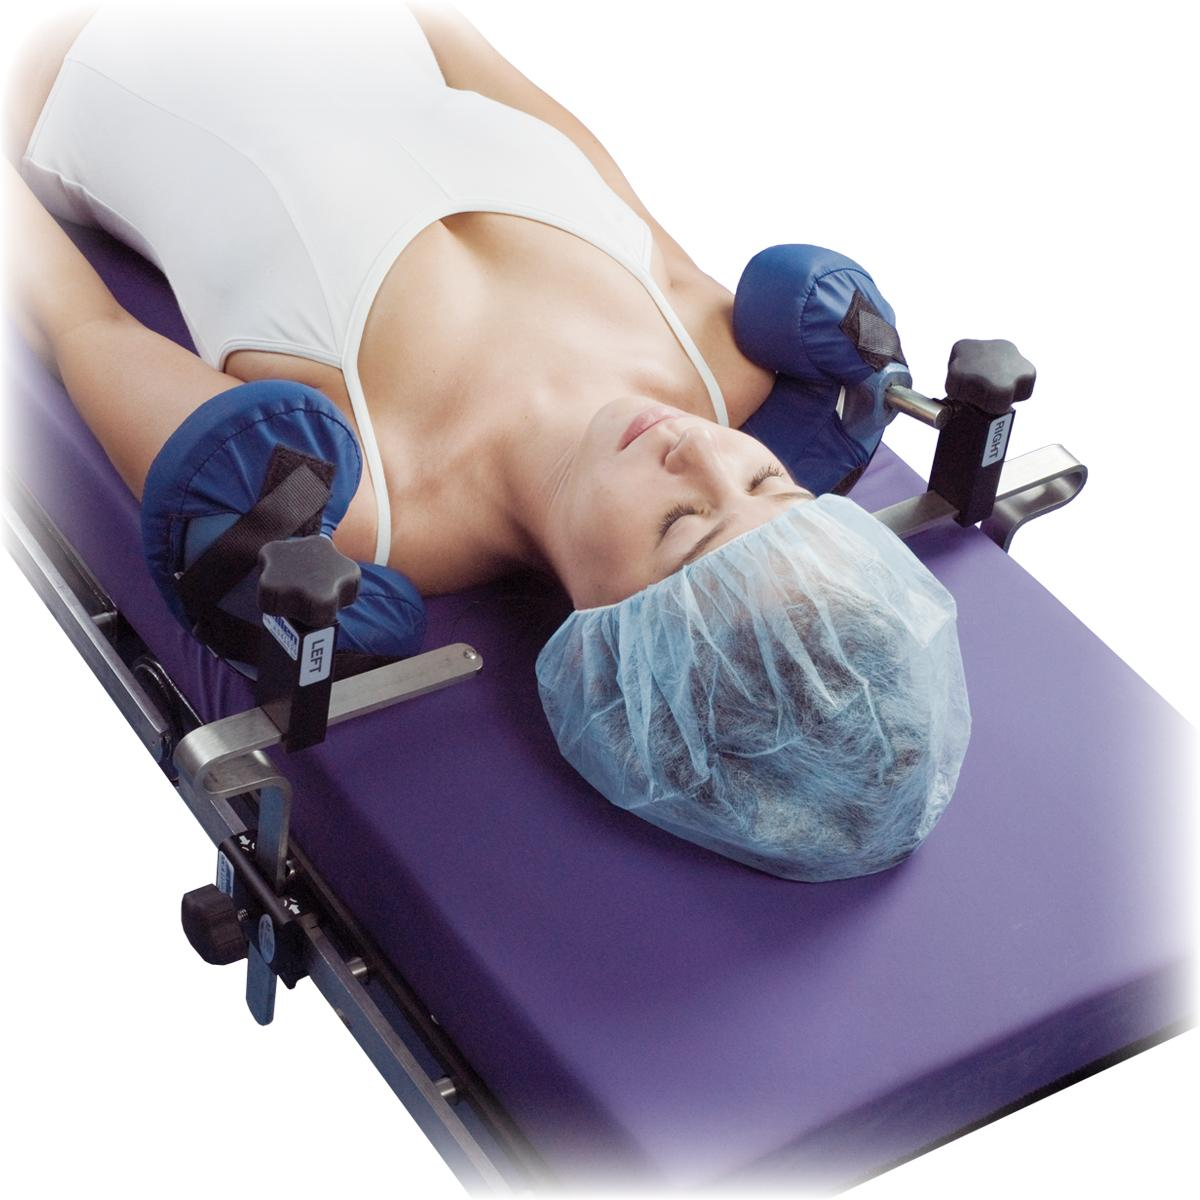 Shoulder Supports in use, patient prone